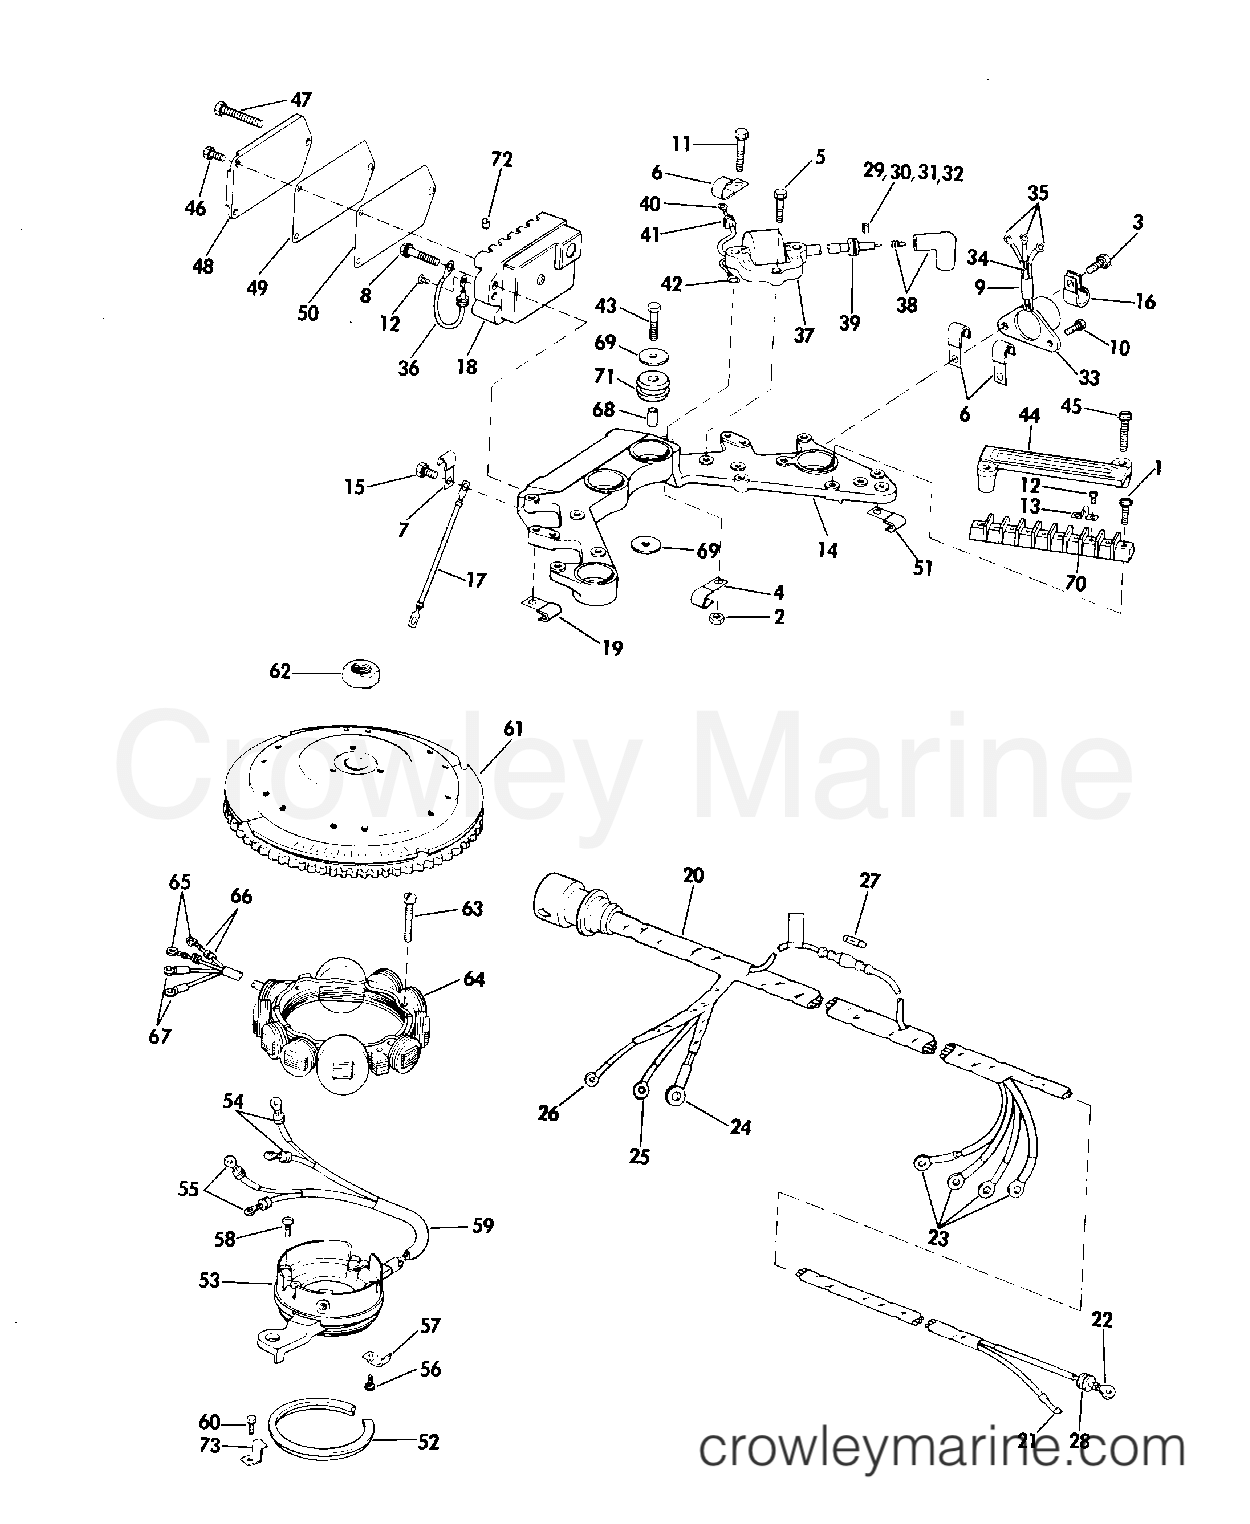 Evinrude E Tec Parts Diagram Wiring And Engine Ski Doo 48 Hp Get Free Image About Together With Mercury 225 Optimax Fuel Pump